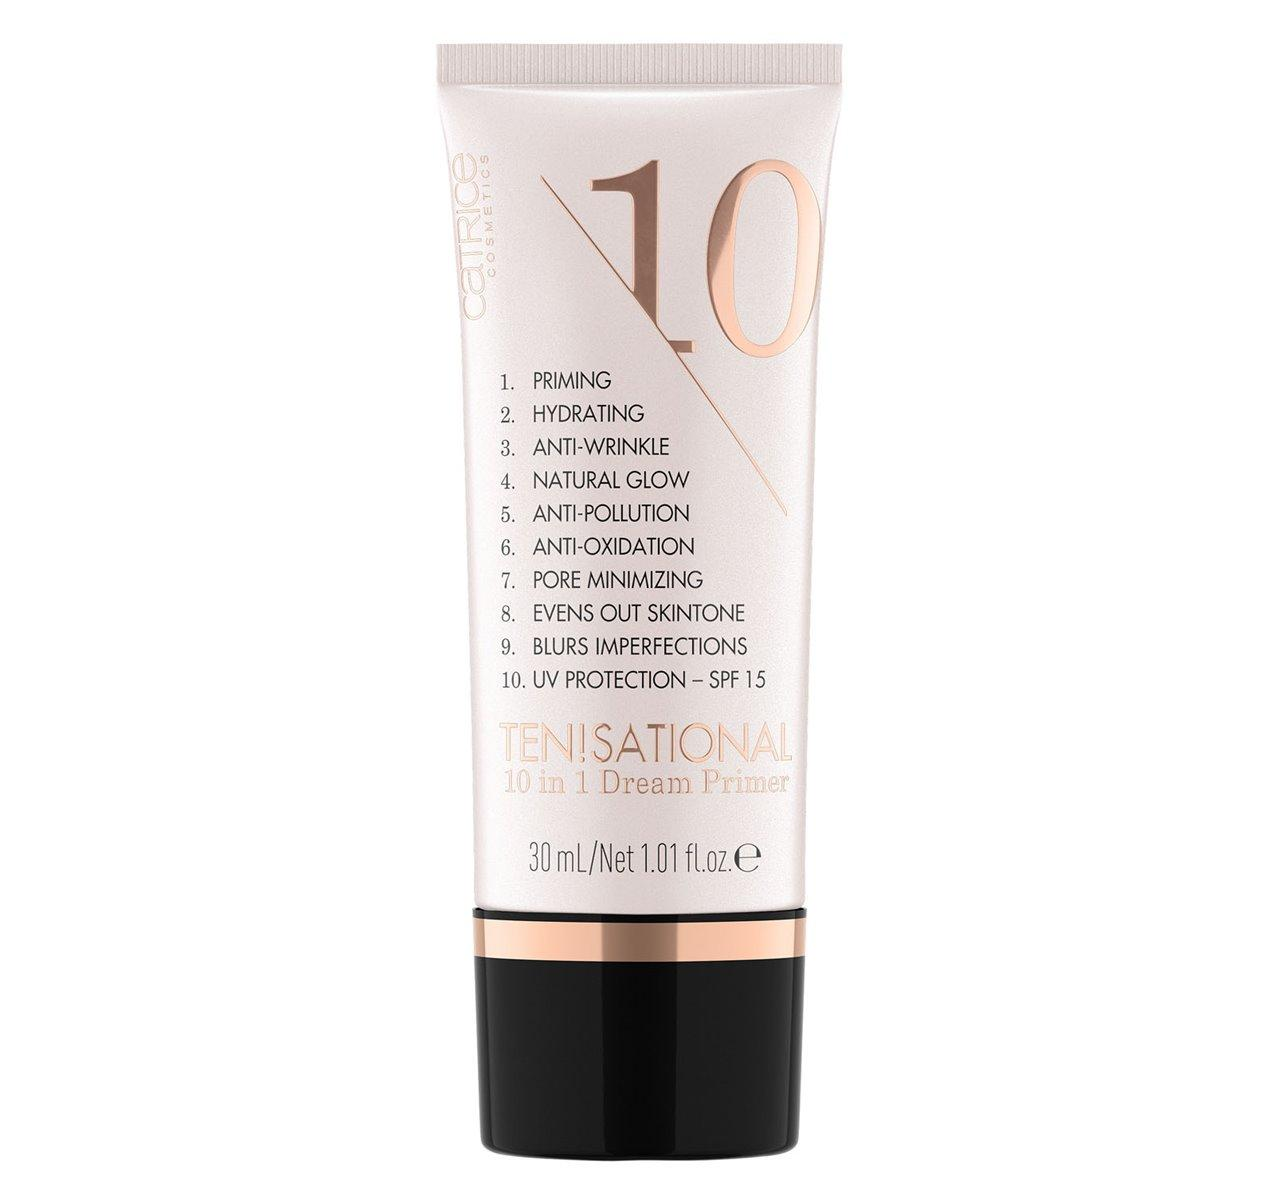 Catrice Sensational 10 In 1 Dream Primer